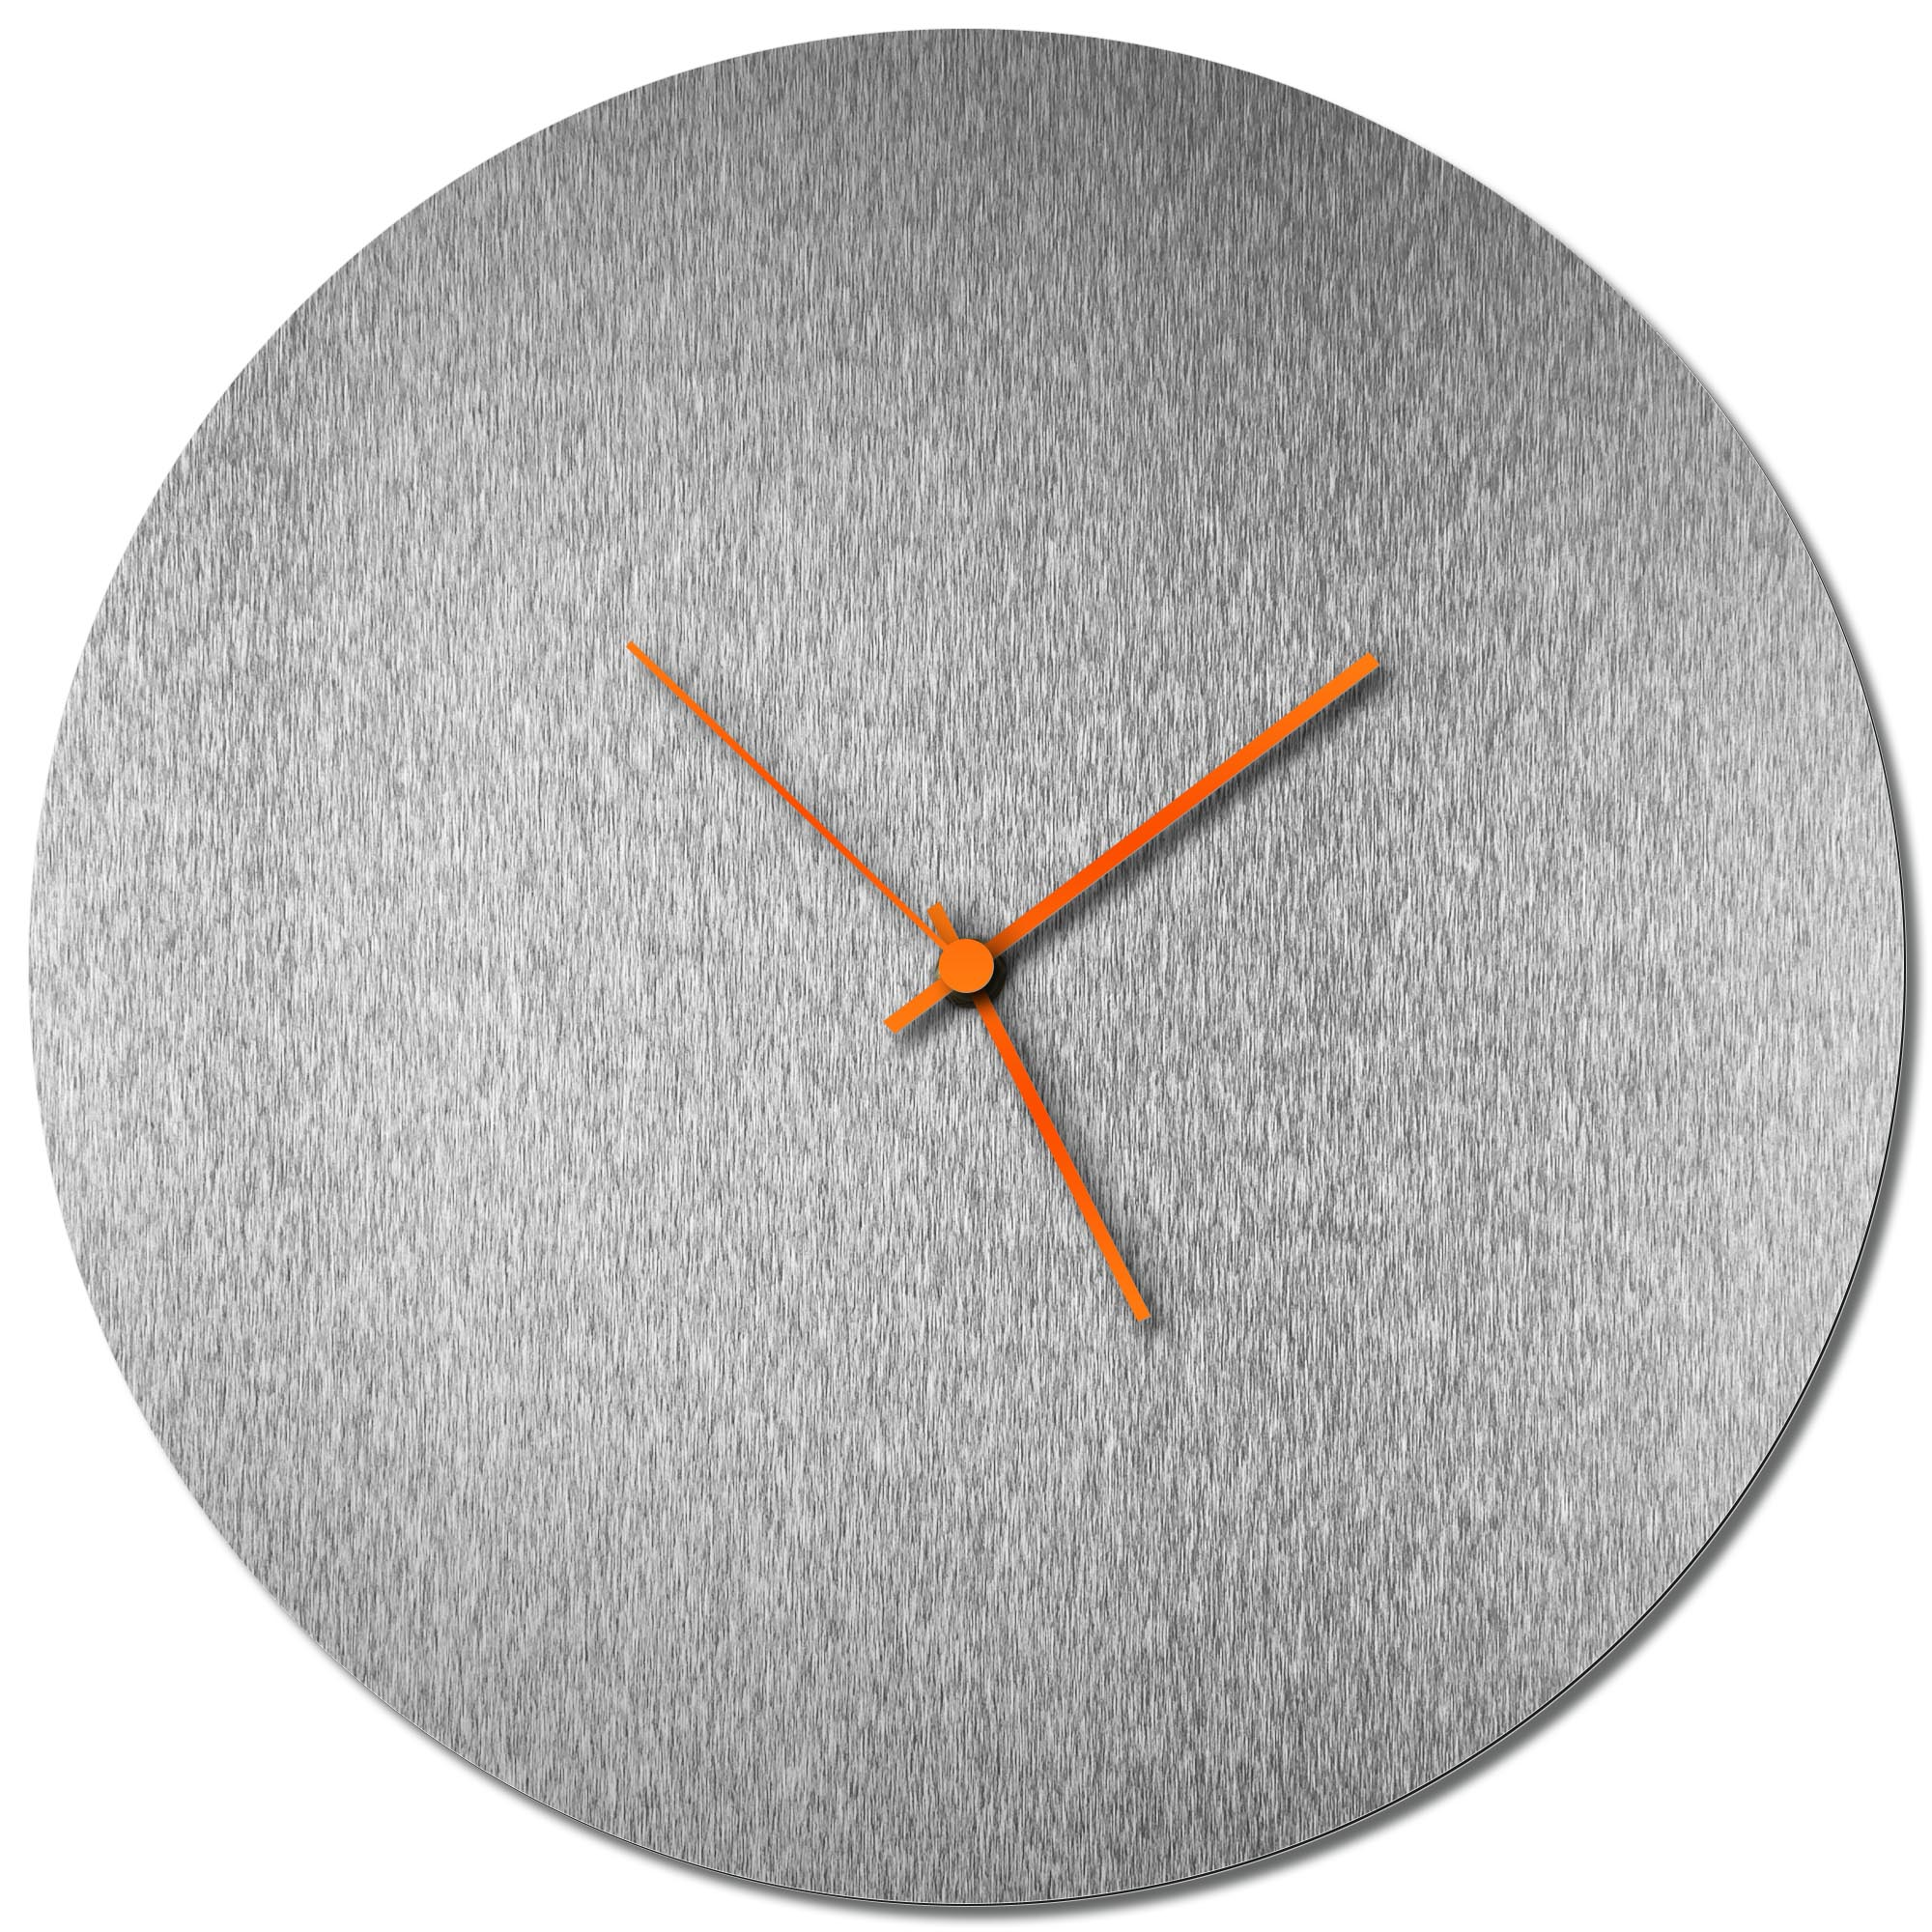 Adam Schwoeppe 'Silversmith Circle Clock Orange' Midcentury Modern Style Wall Clock